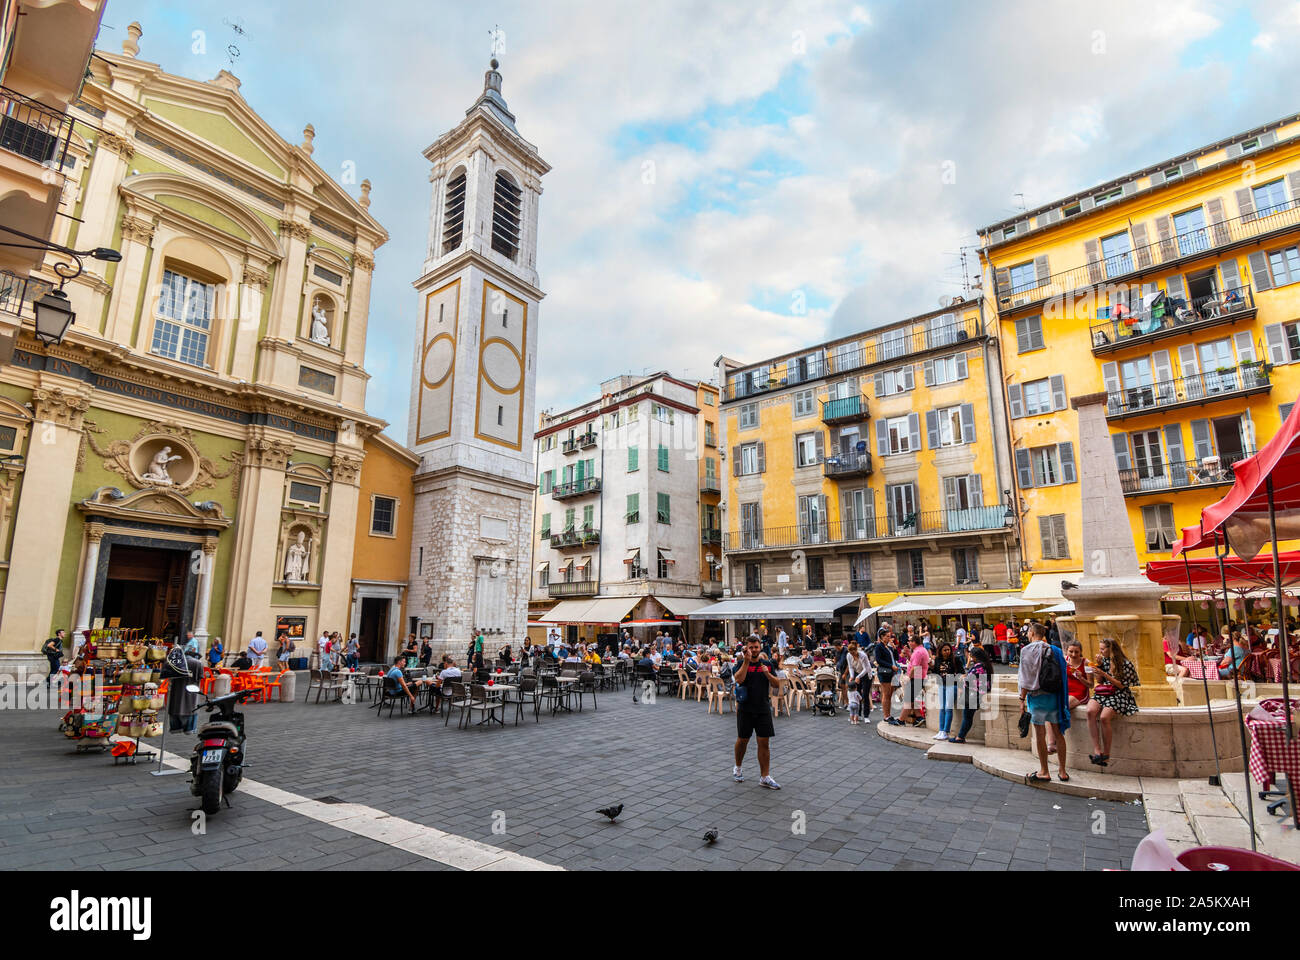 Tourists enjoy an early evening in Place Rossetti surrounded by shops, cafes, fountains and the Nice Cathedral, in Old Town Nice France. Stock Photo